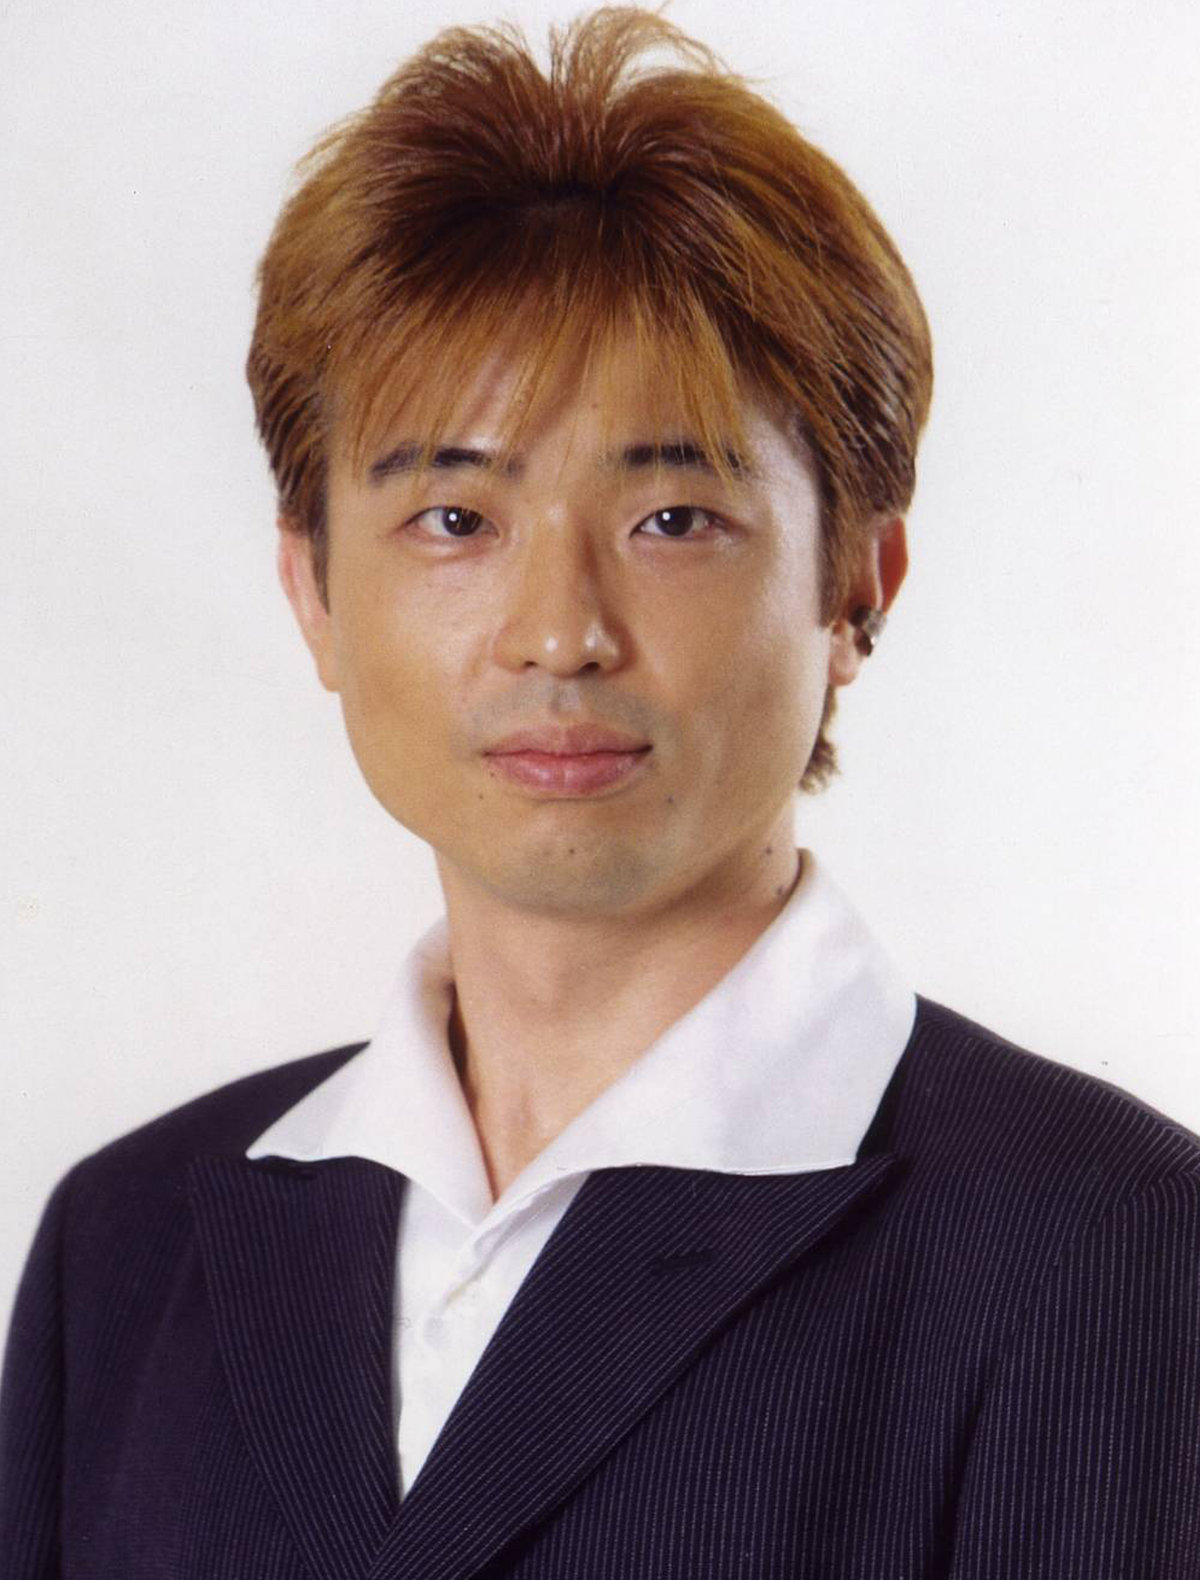 File:KyouseiTsukui.png